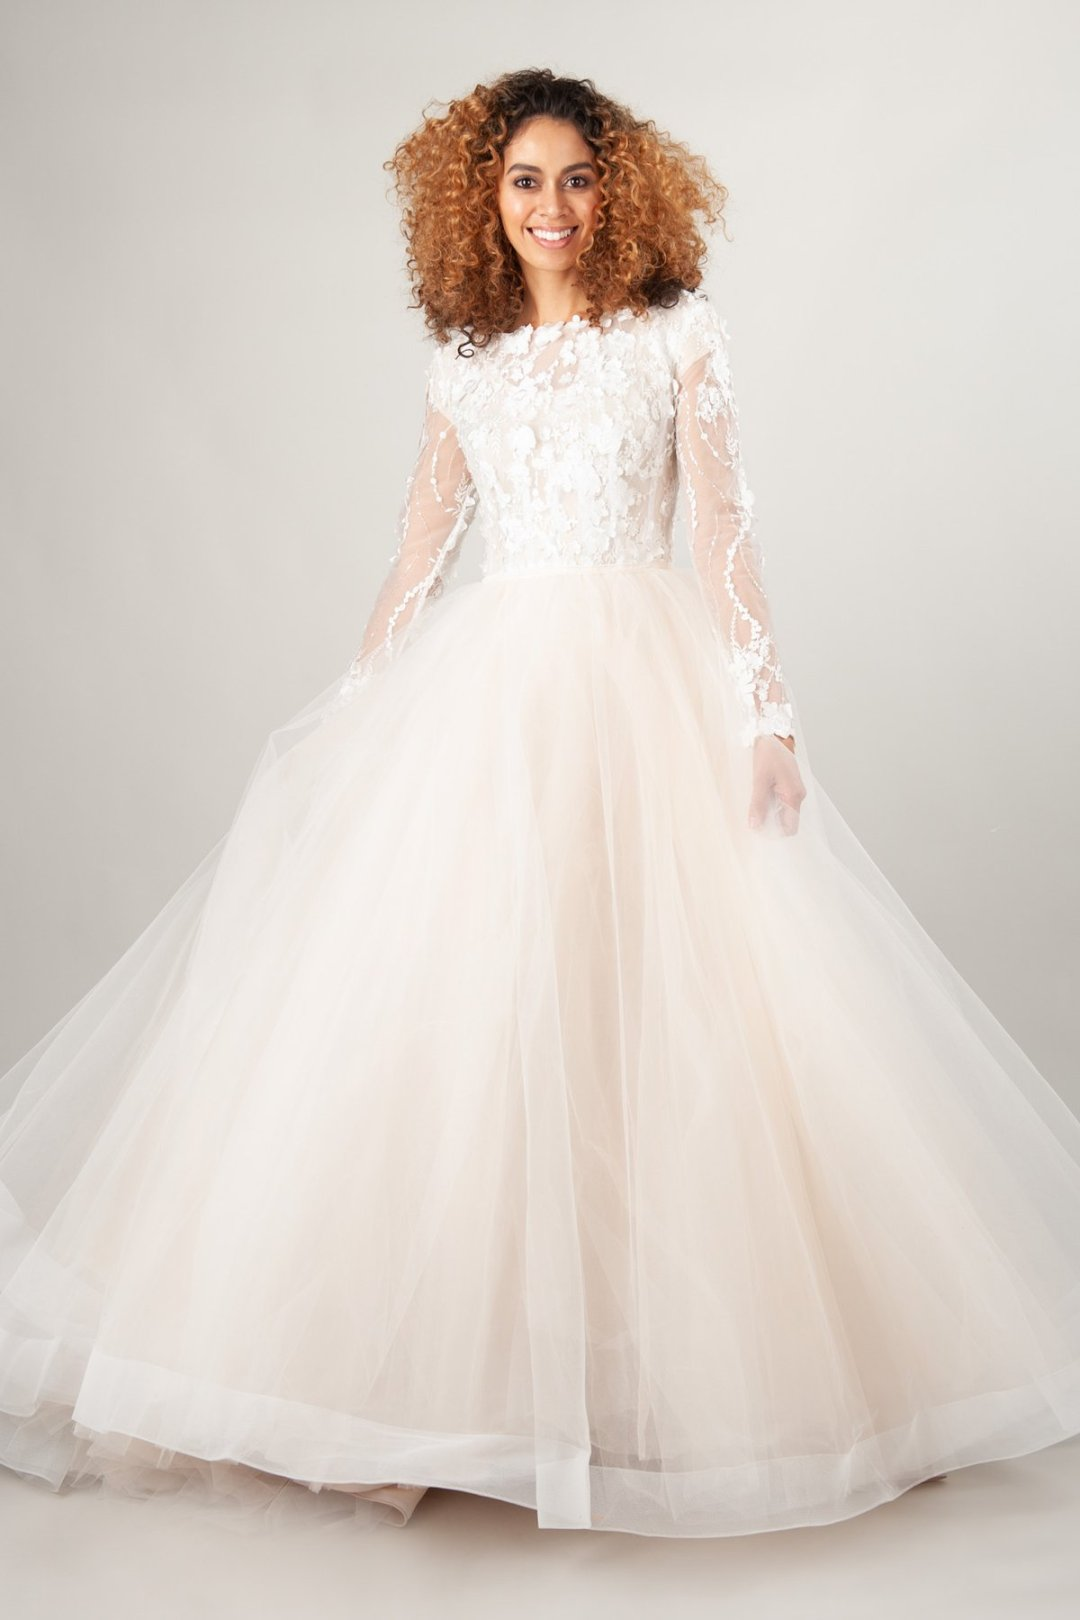 25 Modest Ball Gown Wedding Dresses - 6